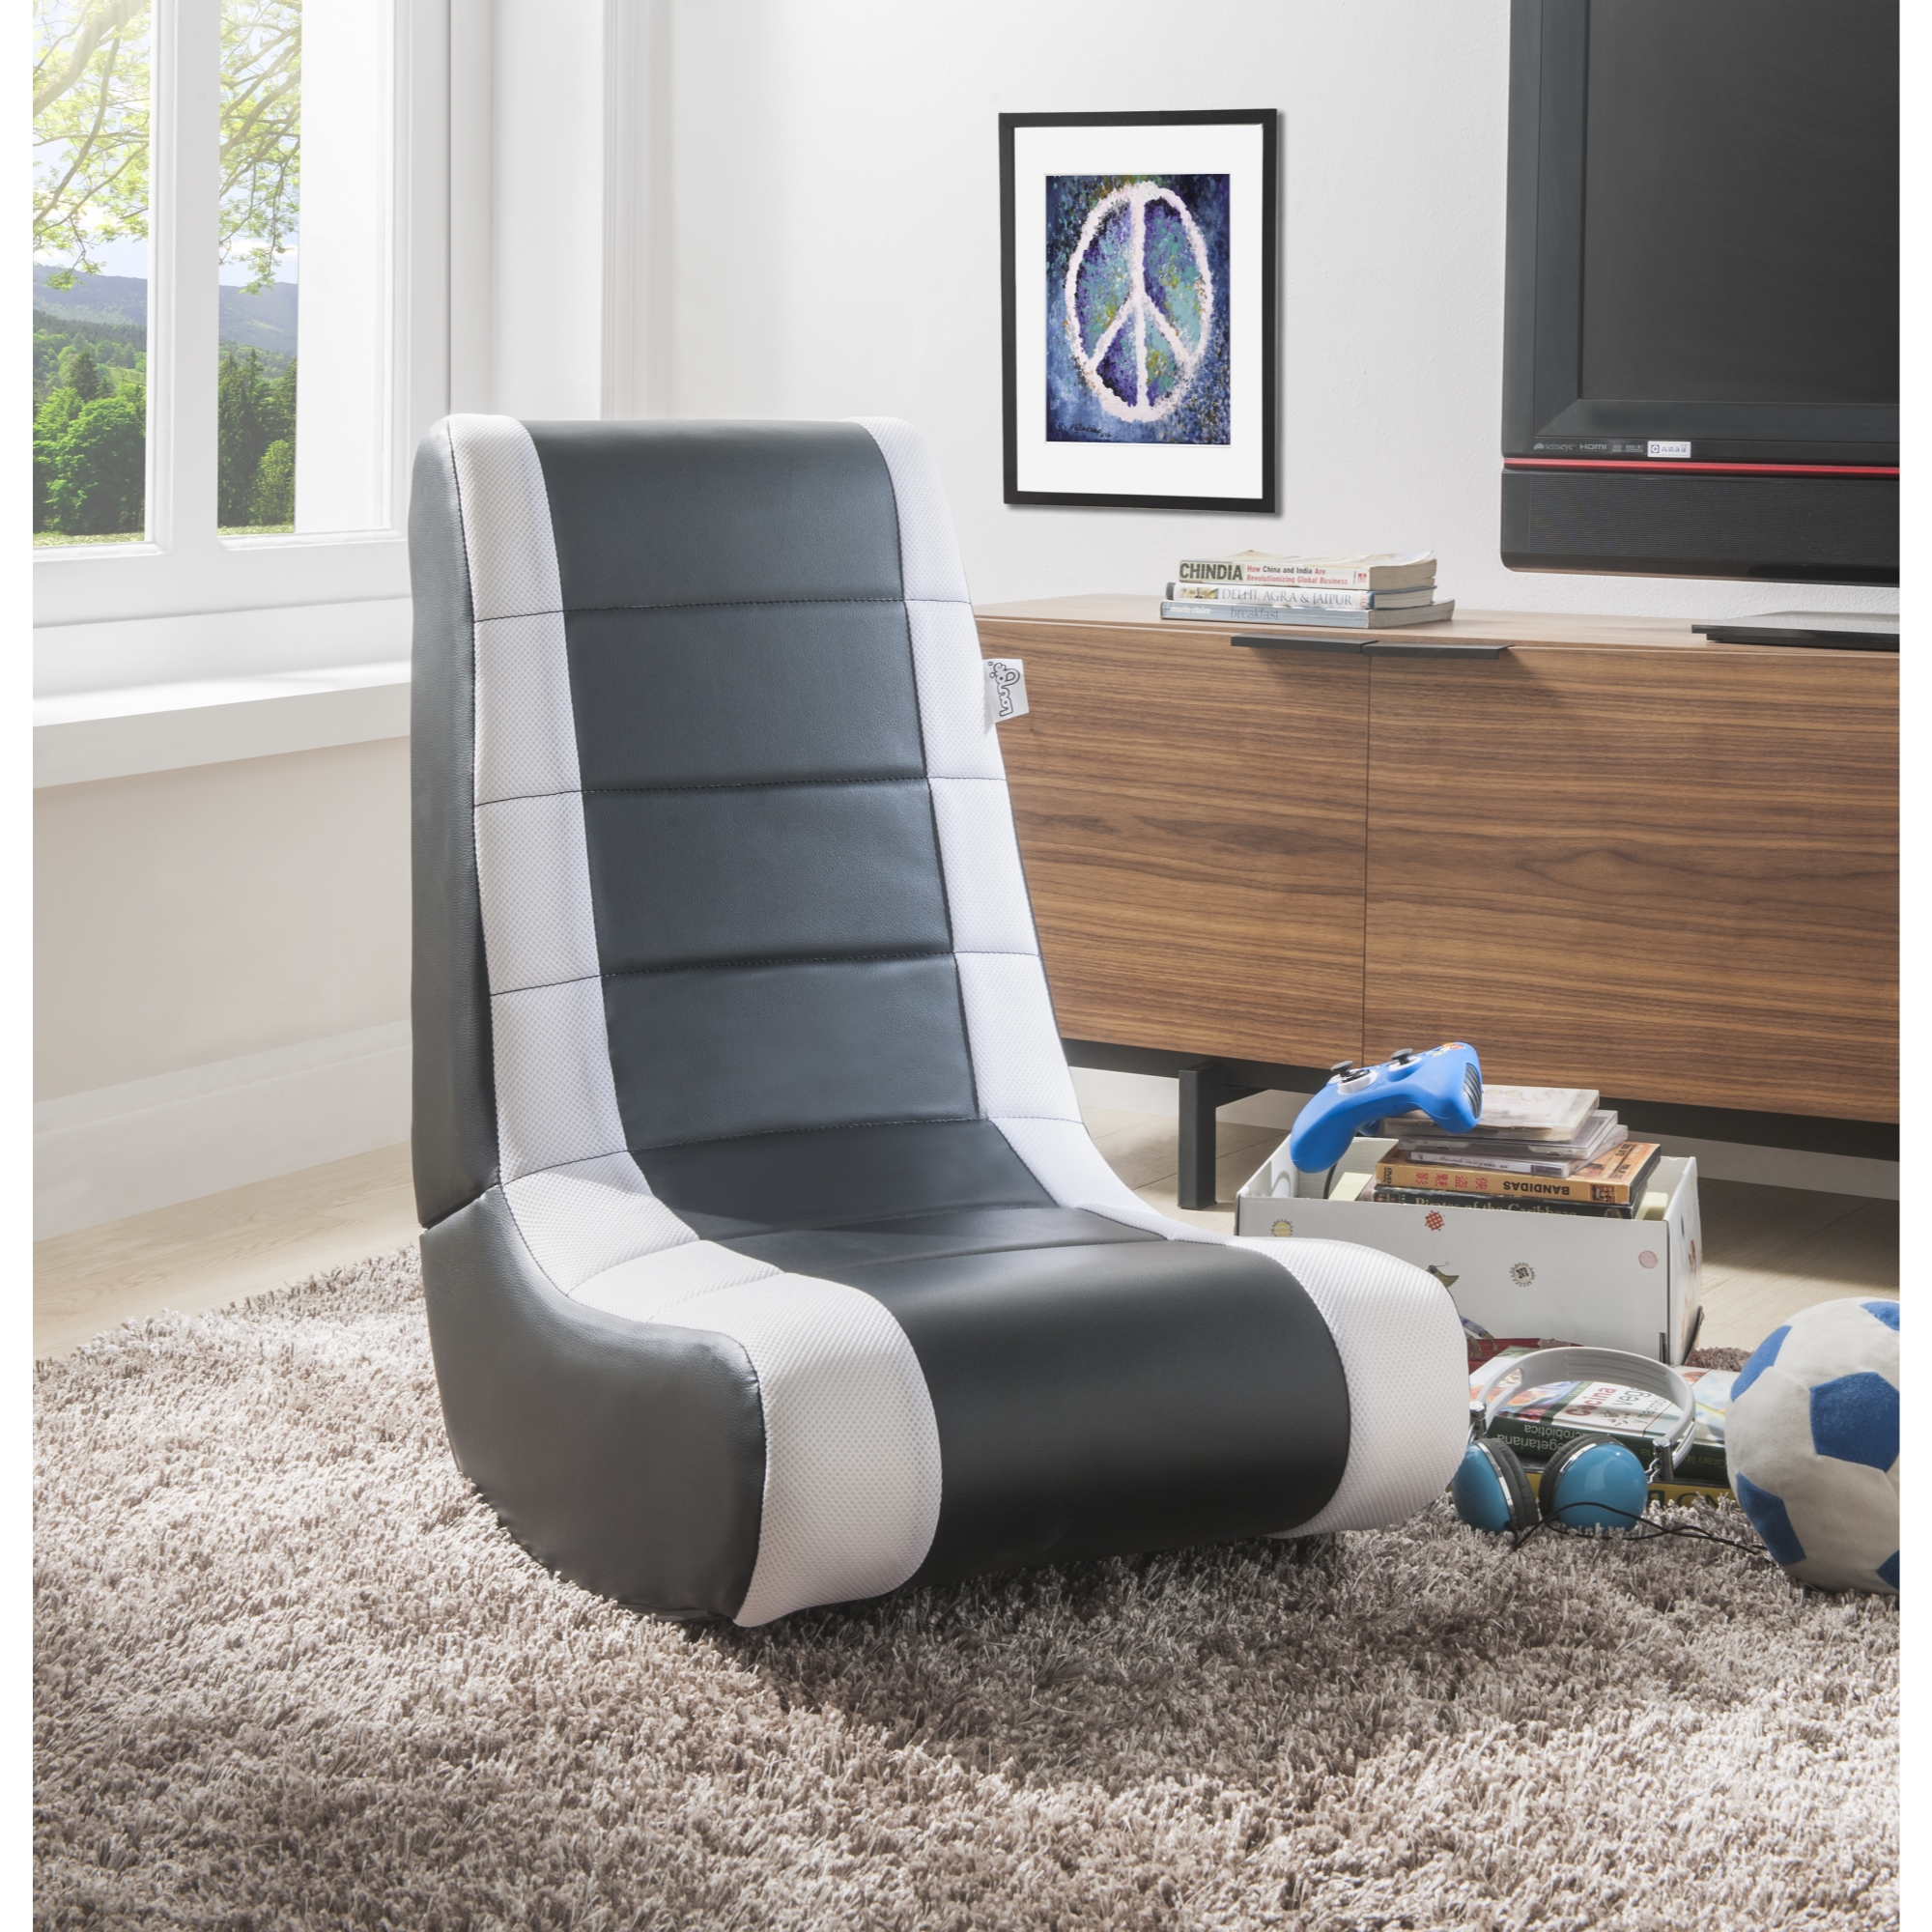 Loungie Black/White PU Leather Chair For Kids, Teens, Adults, Boys Or Girls